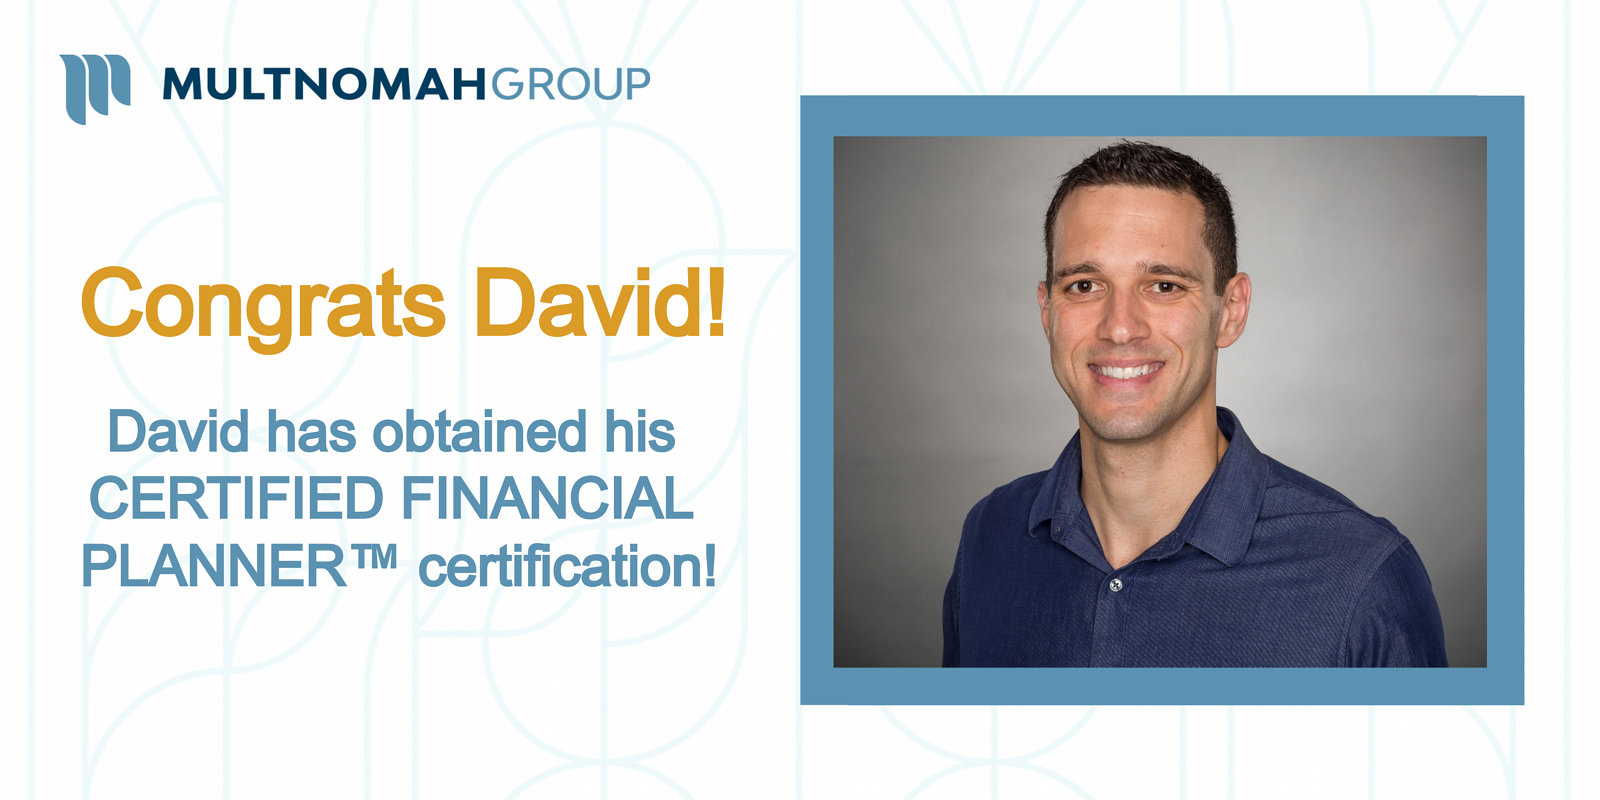 David Imhoff Obtained CFP® Certification